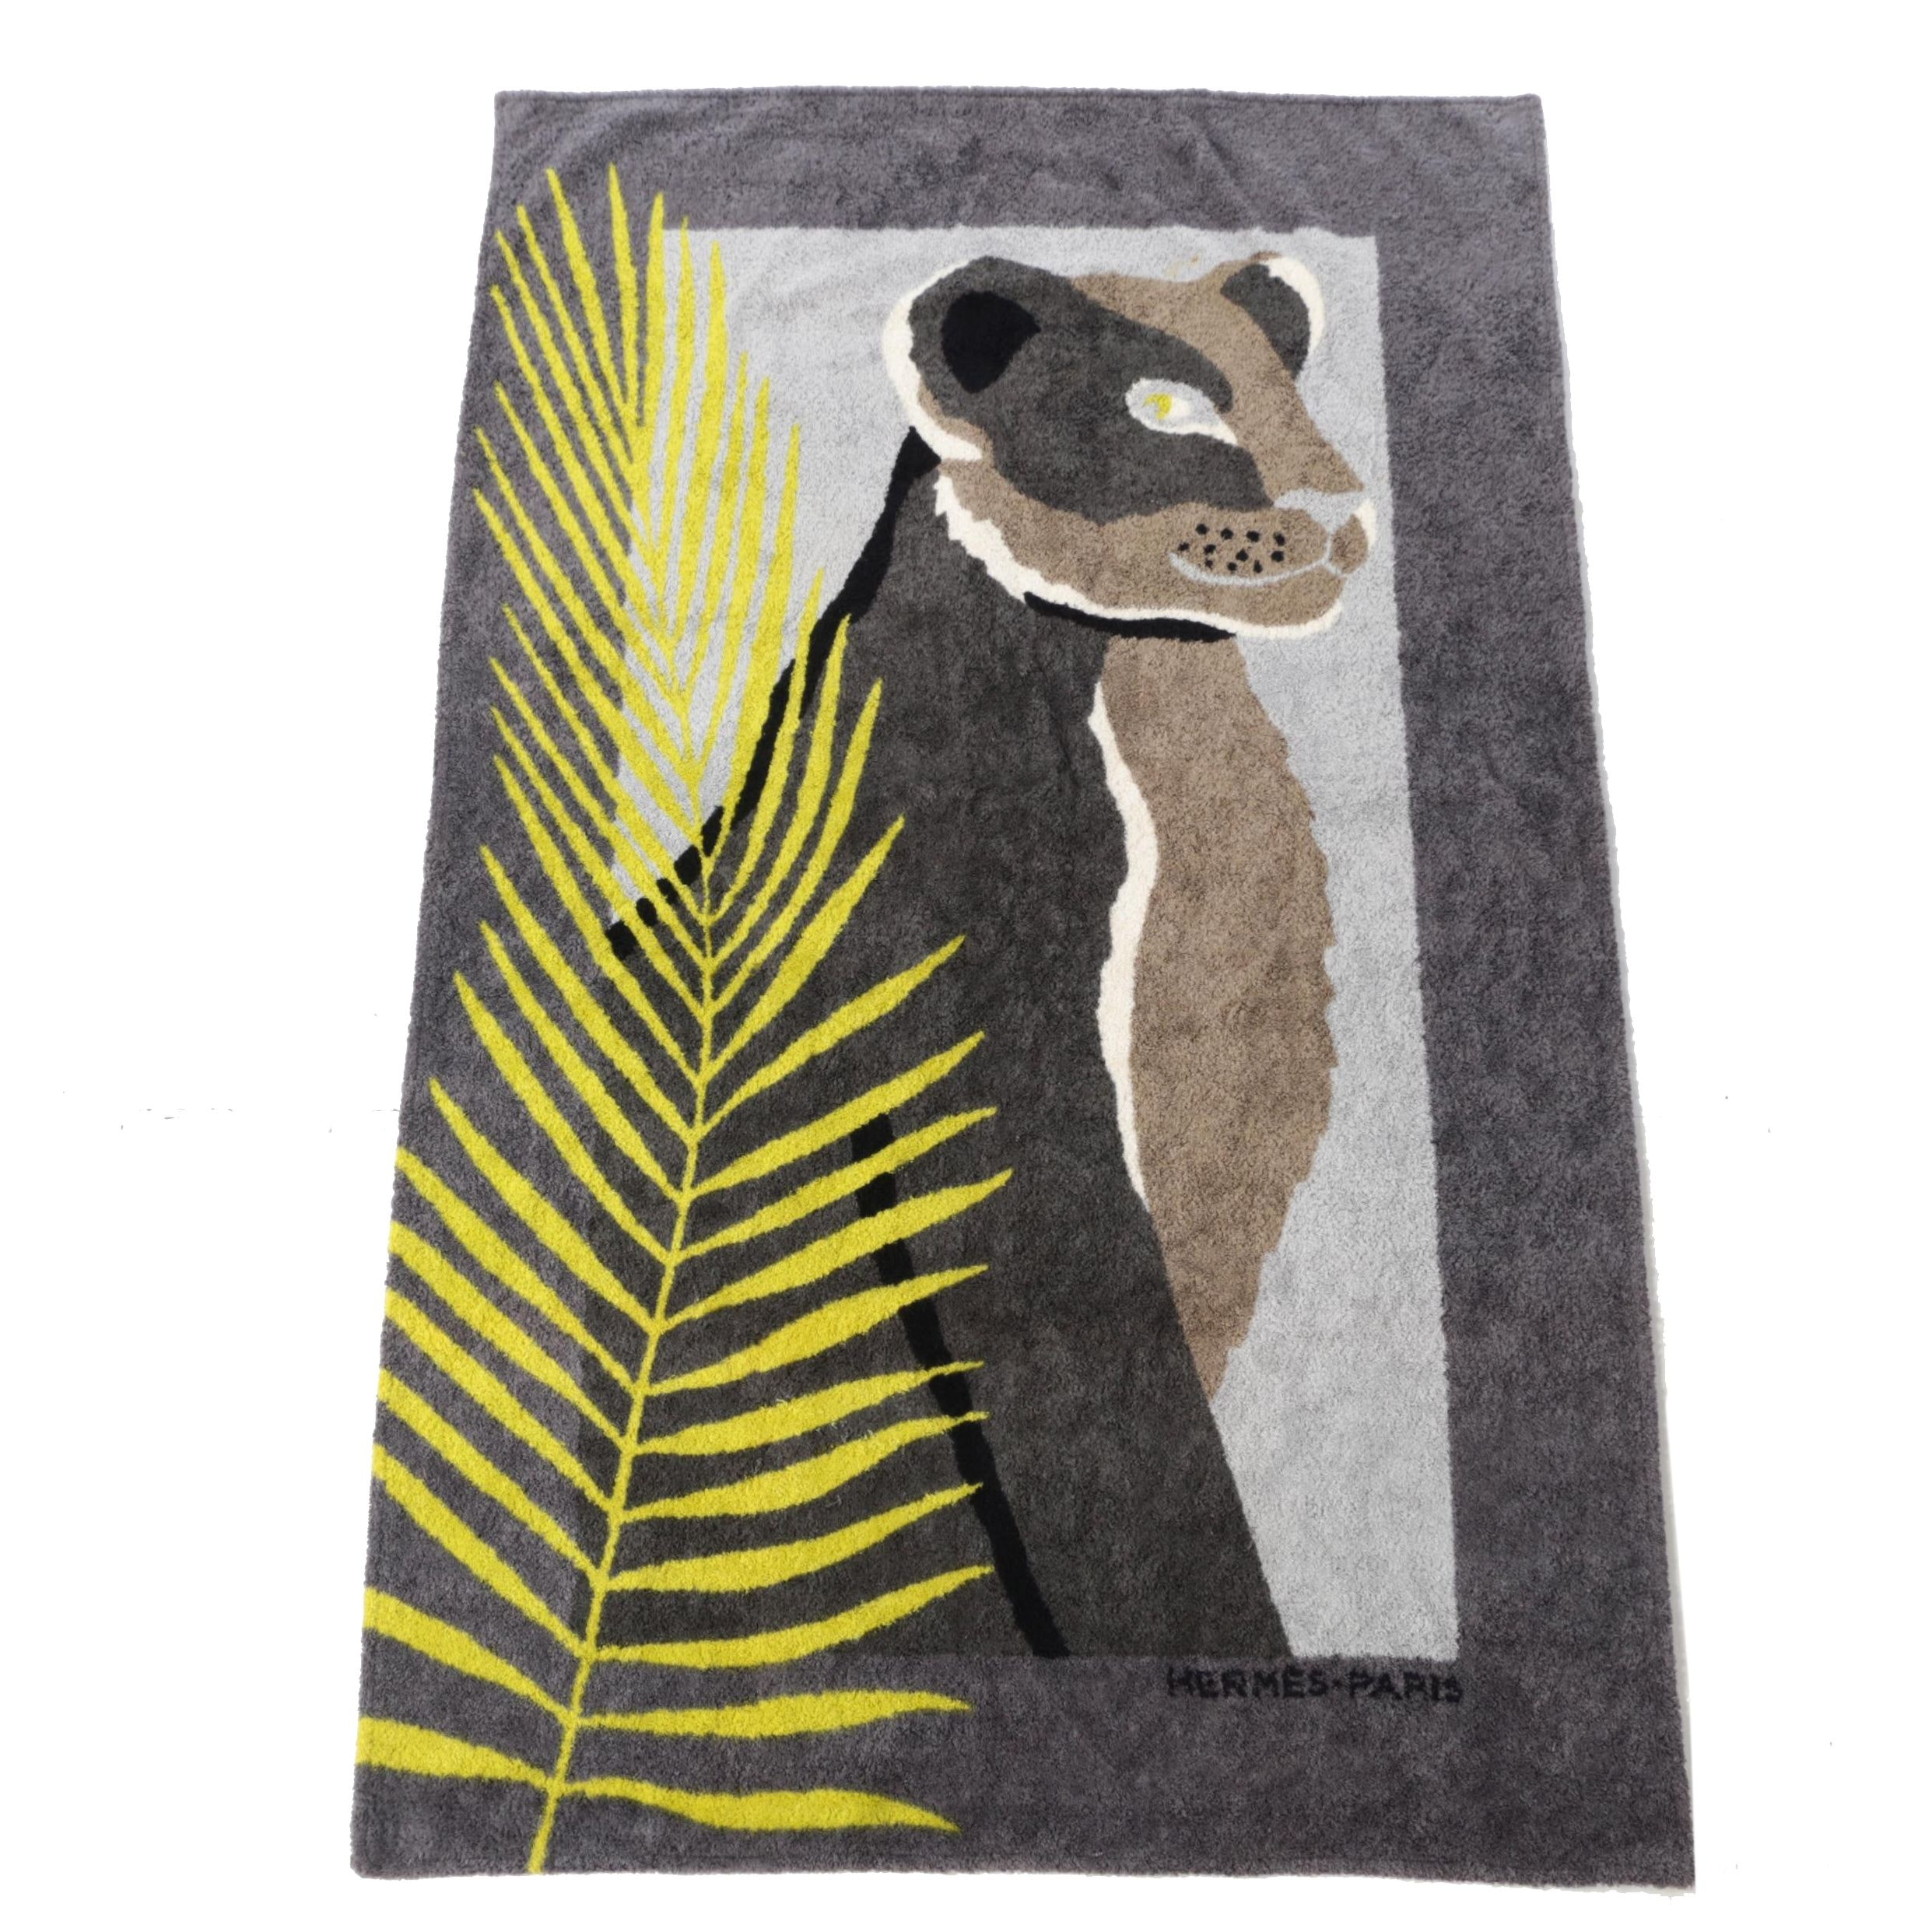 Hermès Feline Tigress Print Beach Towel